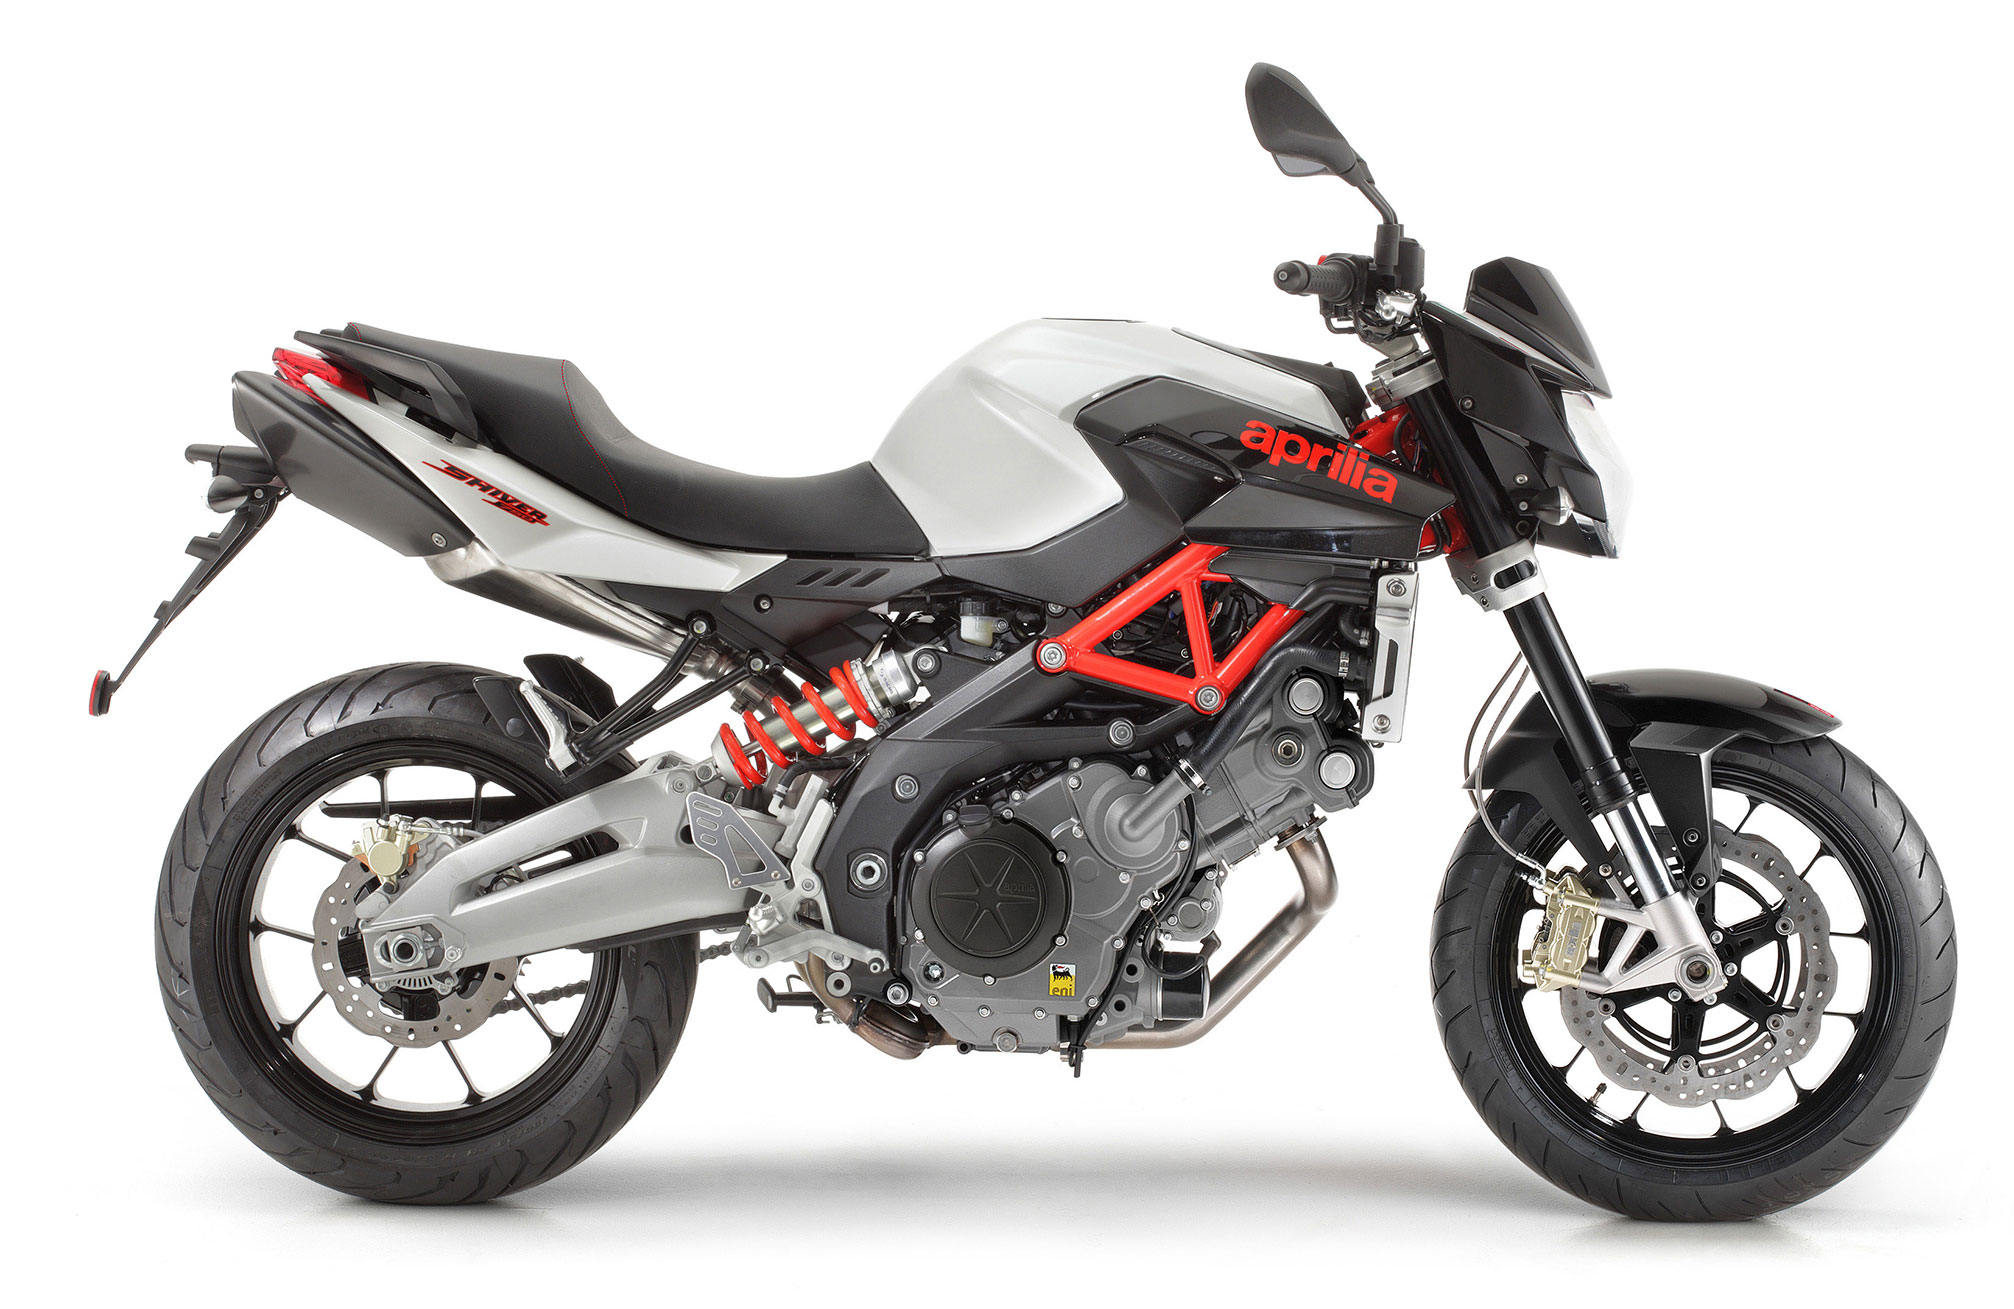 2014 Aprilia Shiver 750 Review